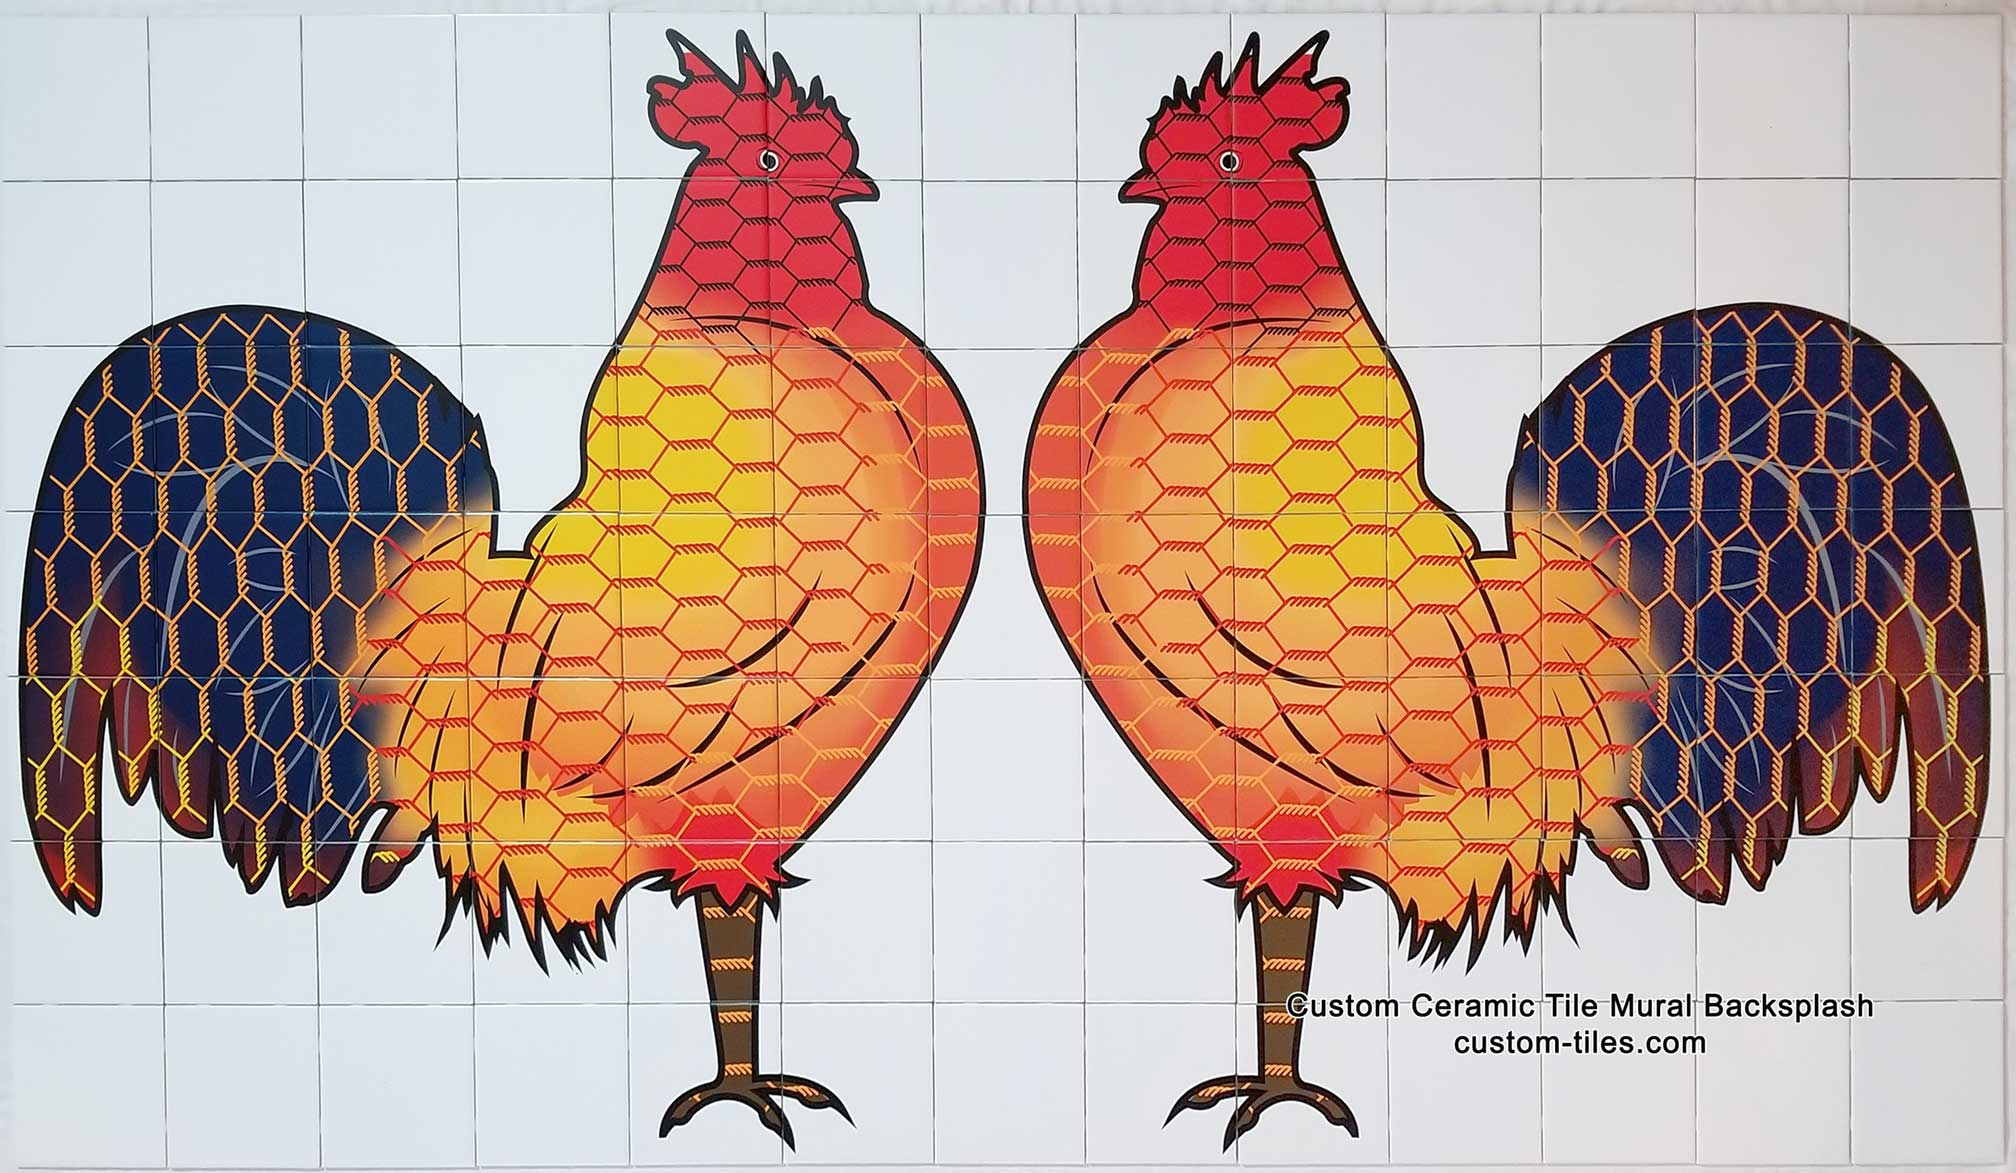 Chickens Custom Ceramic Tile Mural Backsplash